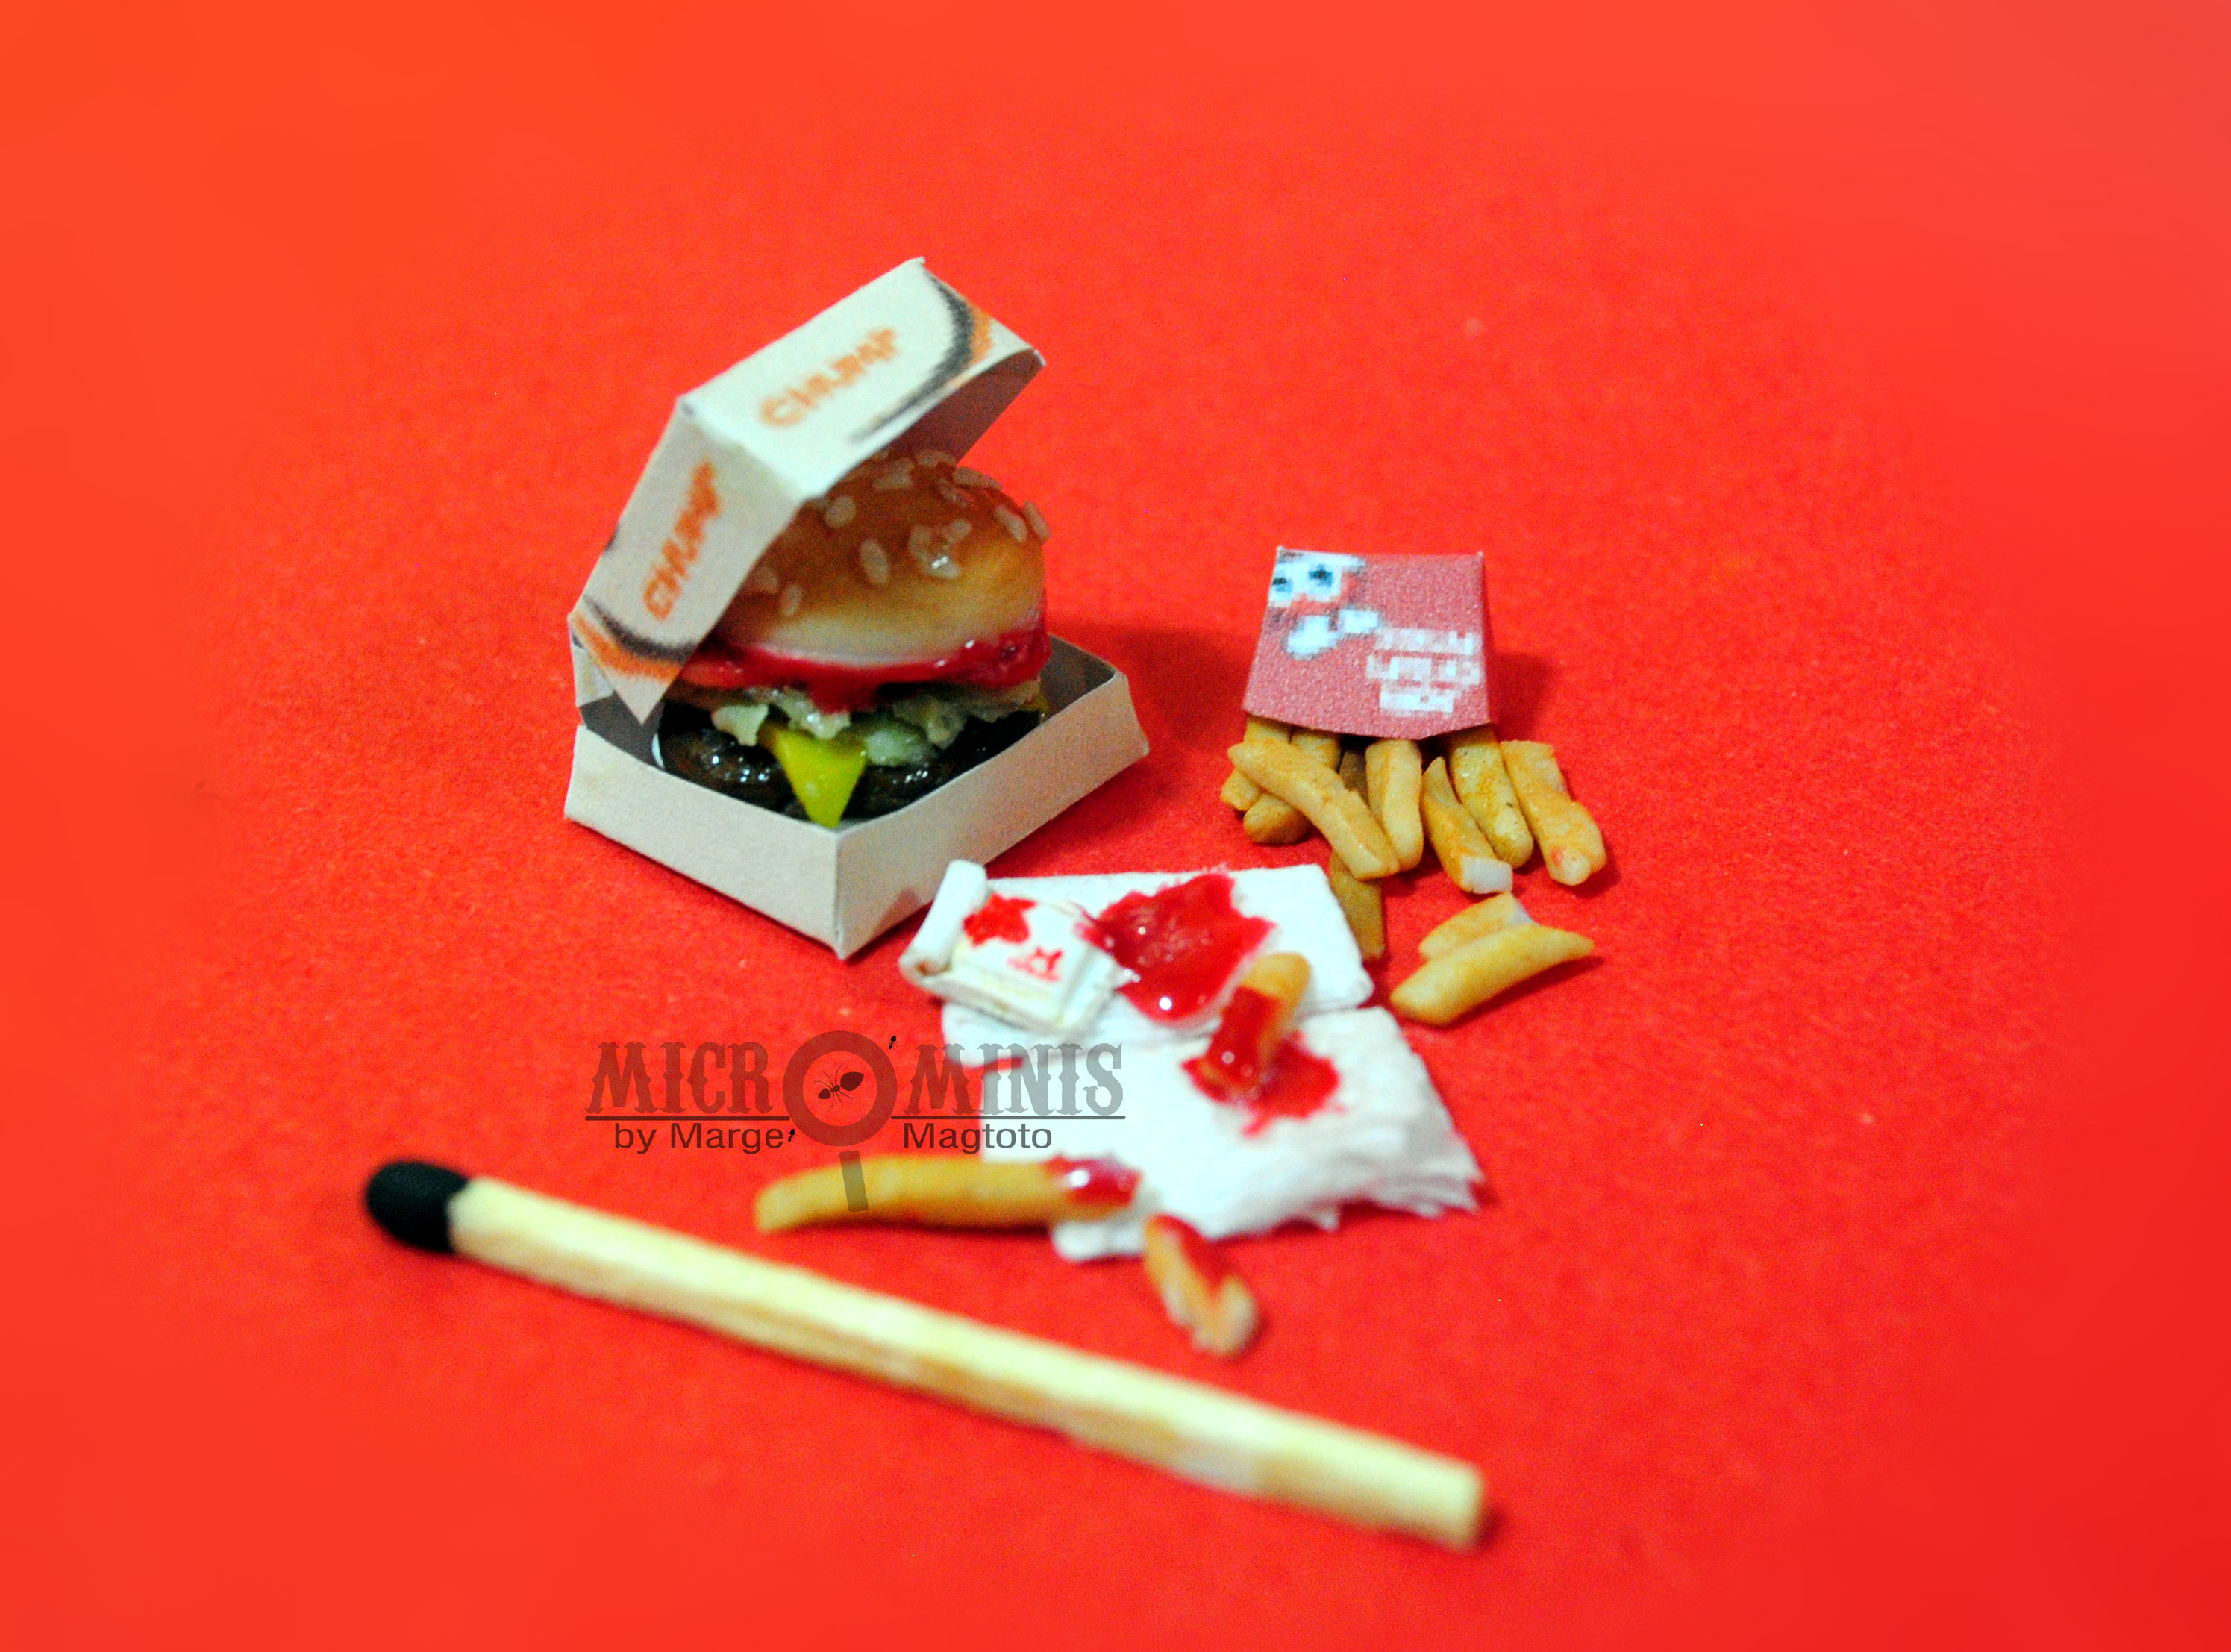 Jollibee inspired Burger Meal Miniature by margemagtoto